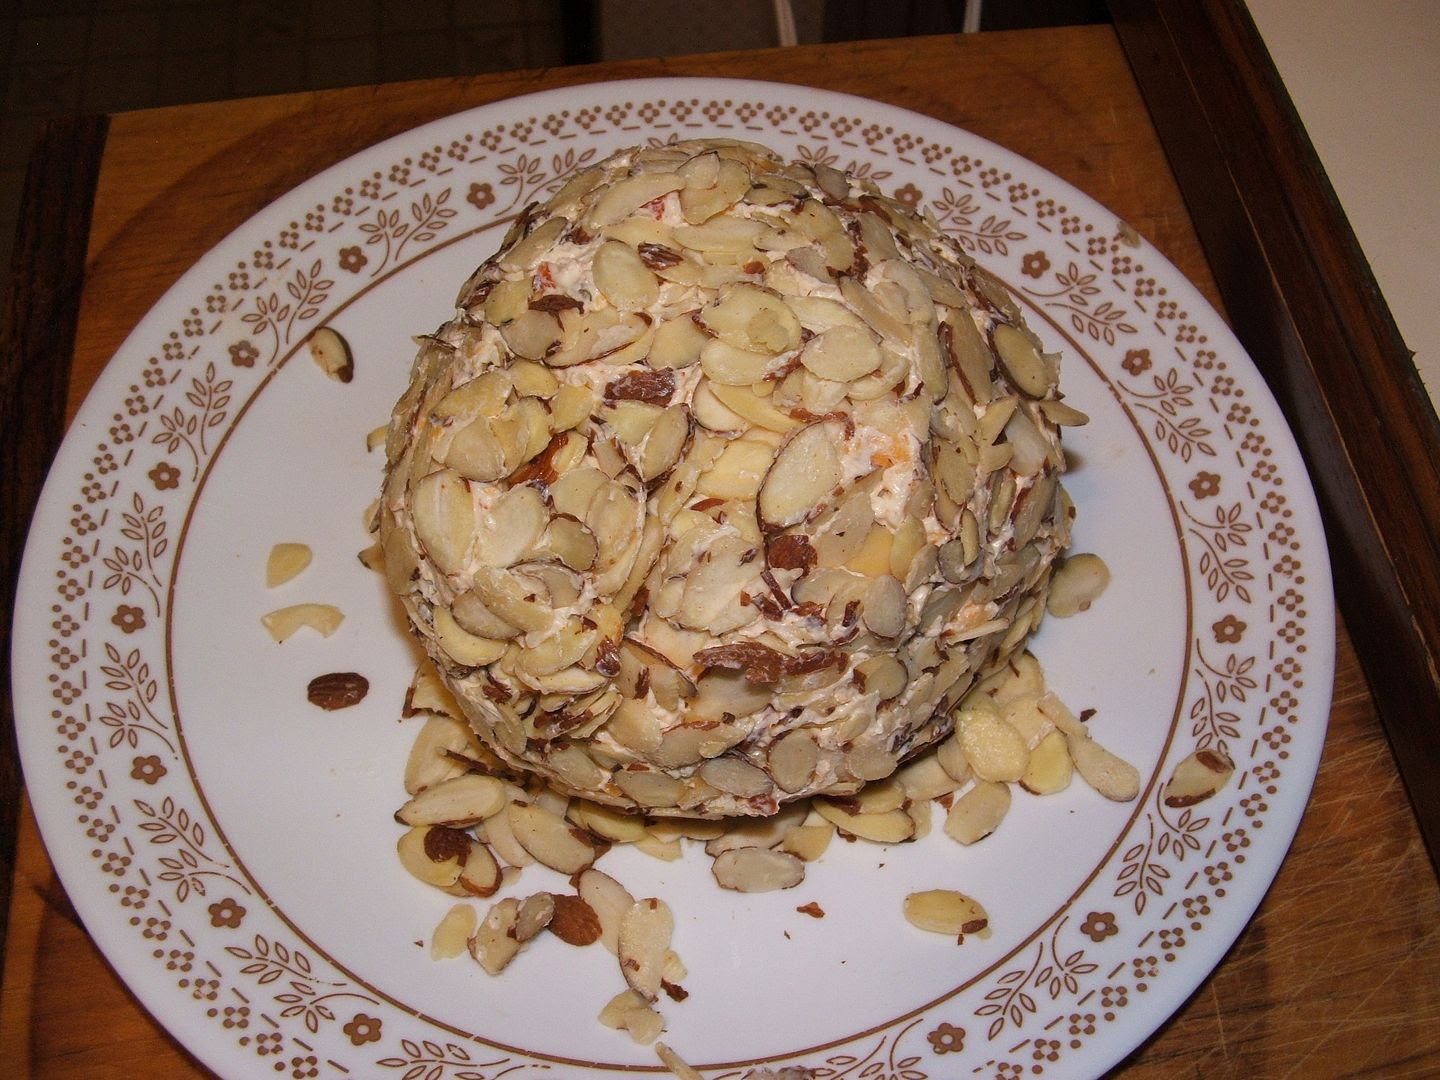 Cheeseball by Angie Ouellette-Tower for godsgrowinggarden.com photo 004_zps50e56123.jpg